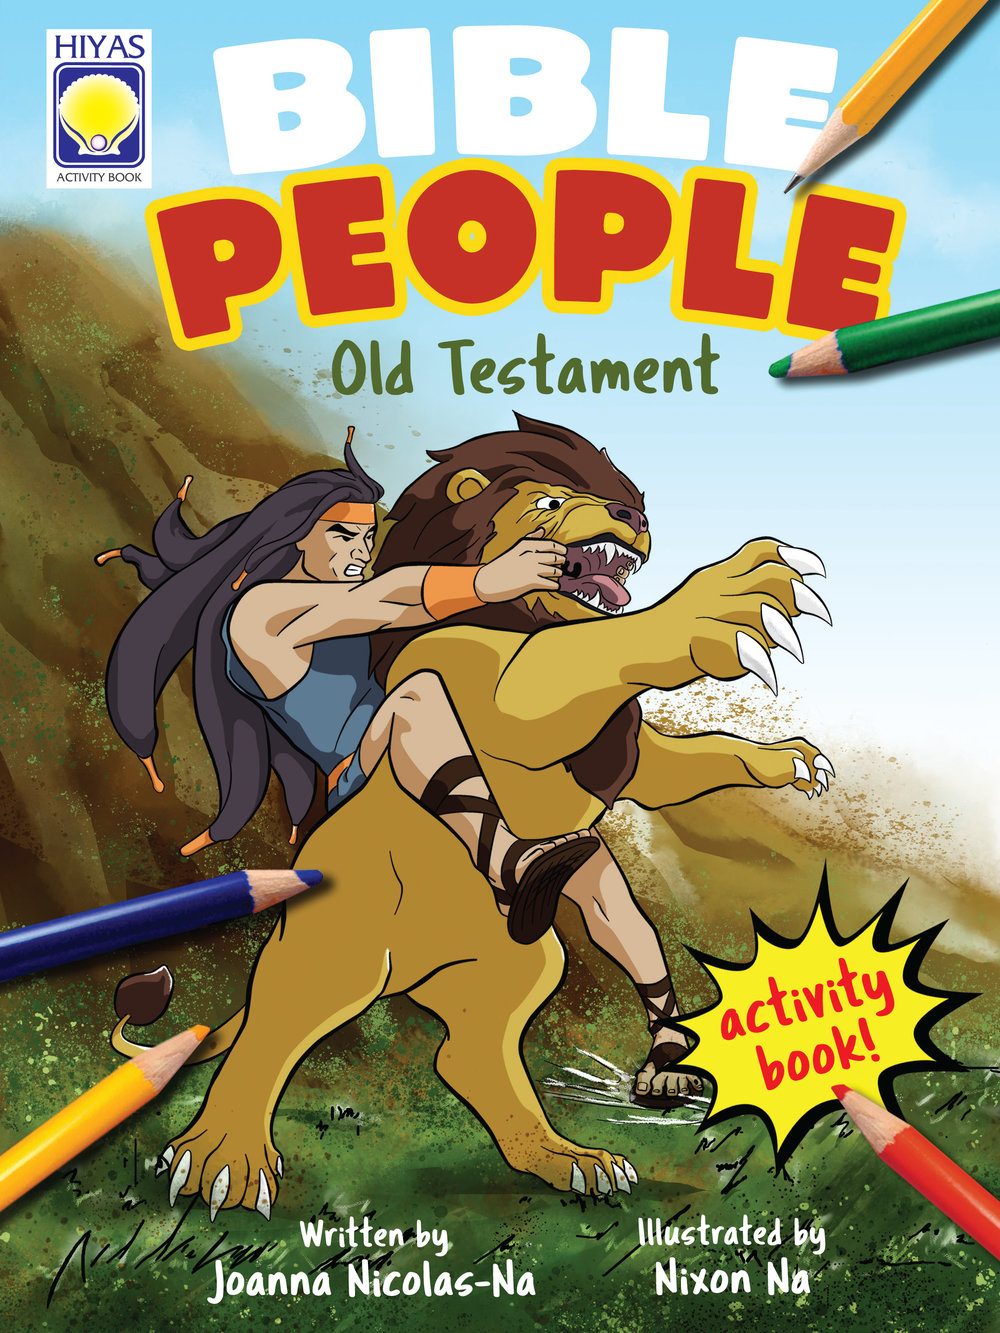 COVER-Bible People-OT.jpg